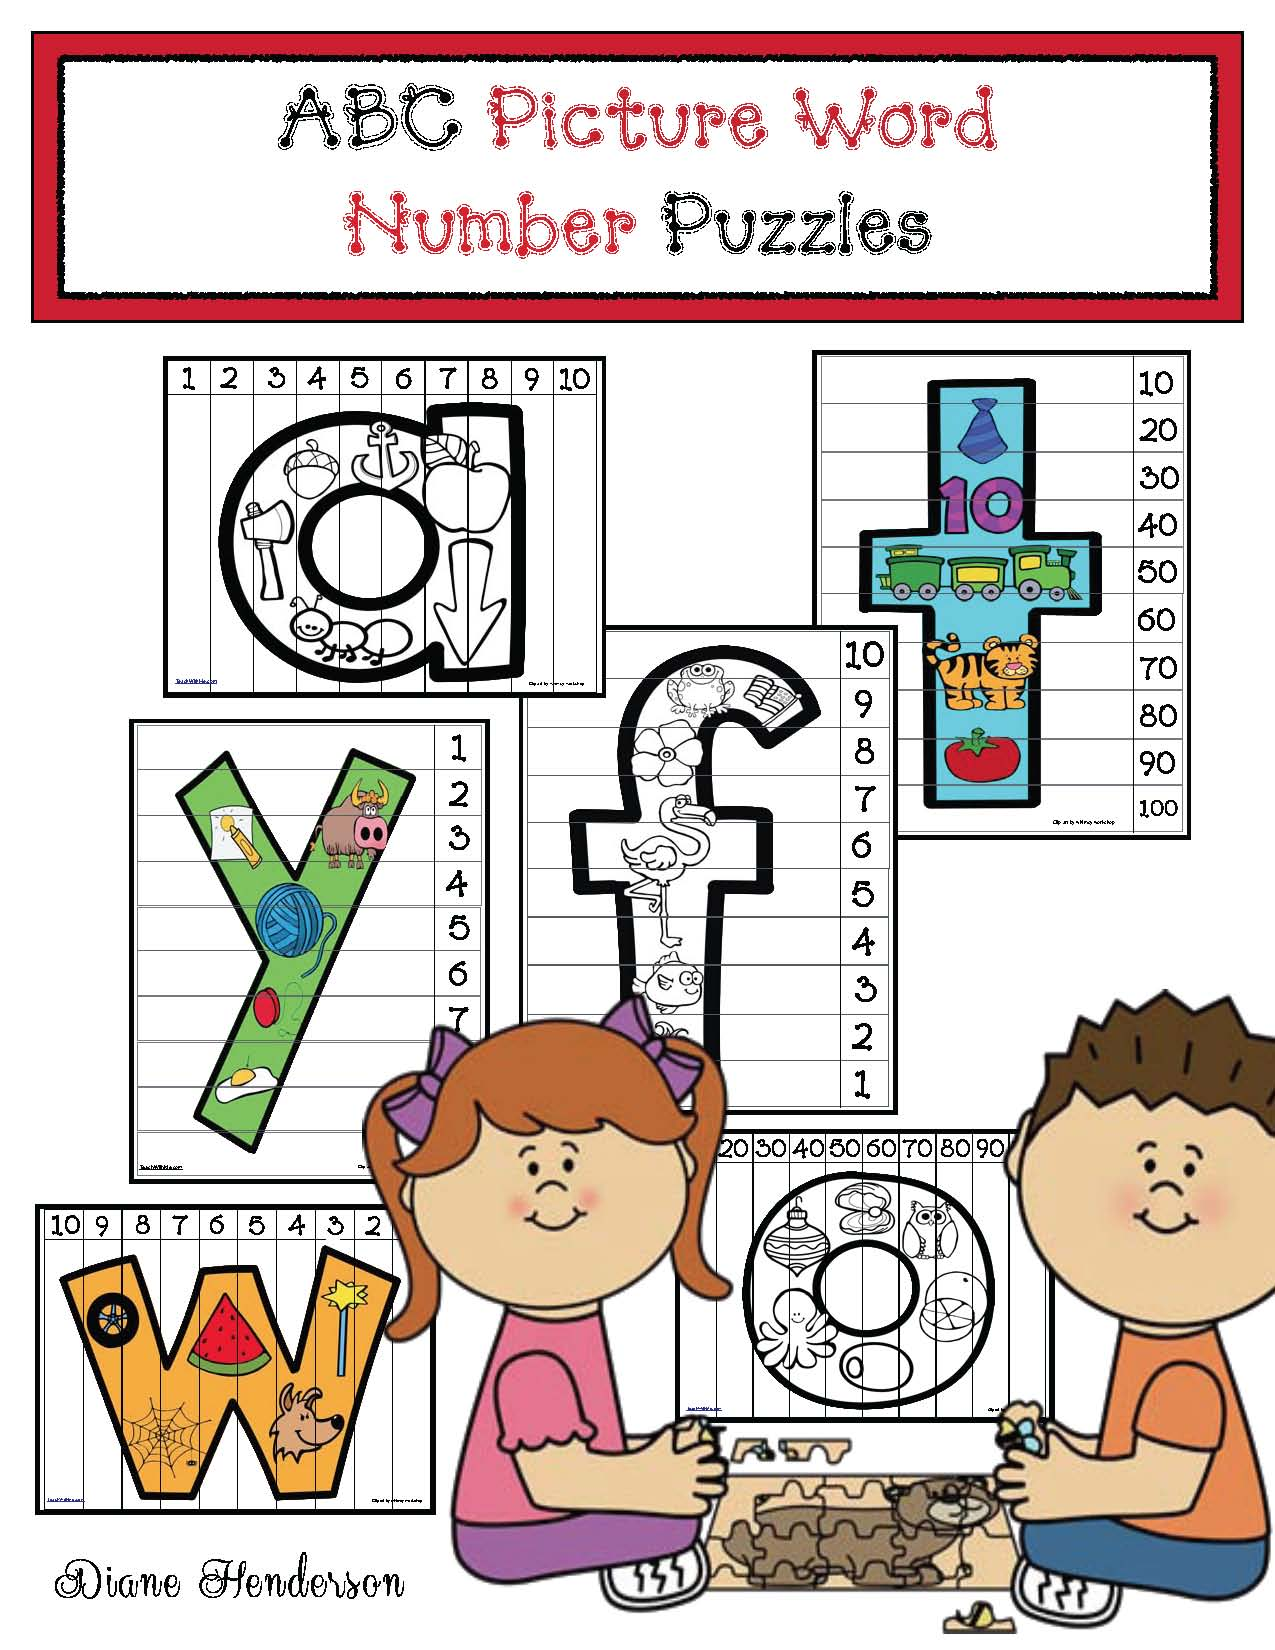 number puzzles, alphabet puzzles, alphabet activities, alphabet games, alphabet crafts, back to school gifts, back to school activities,